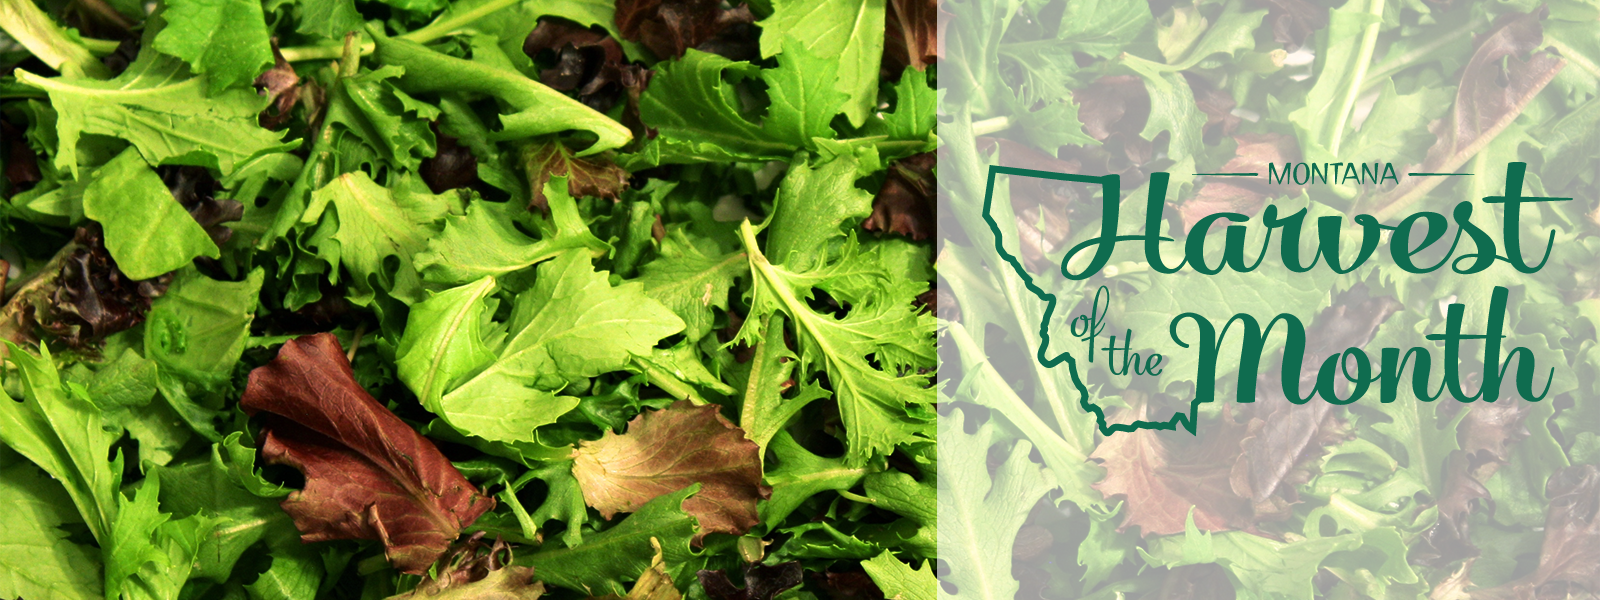 Photo of mixed leafy greens with Montana Harvest of the Month logo.